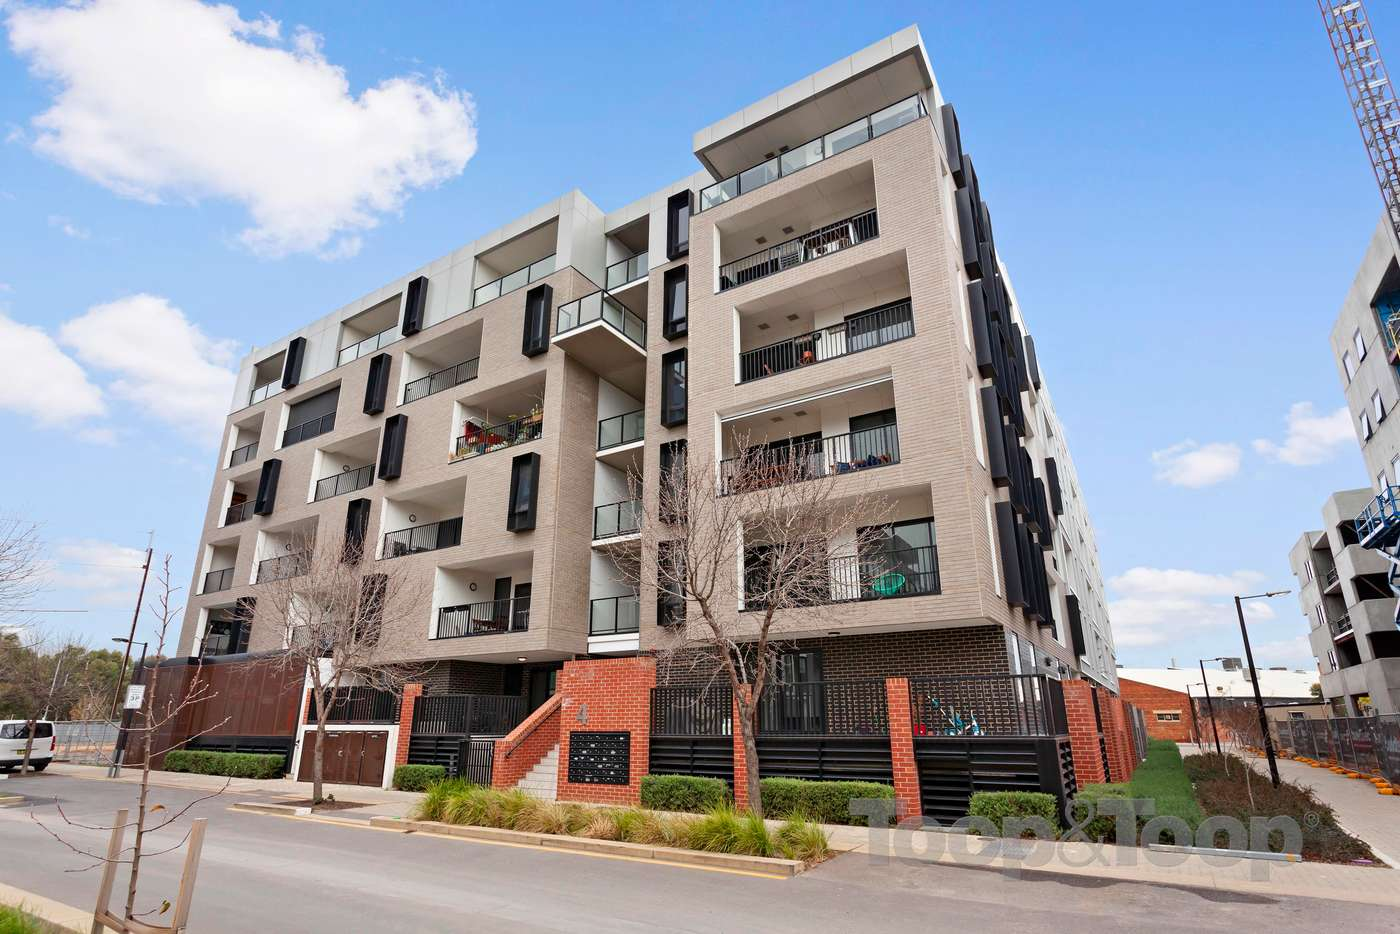 Main view of Homely apartment listing, 509/4 Fifth Street, Bowden SA 5007